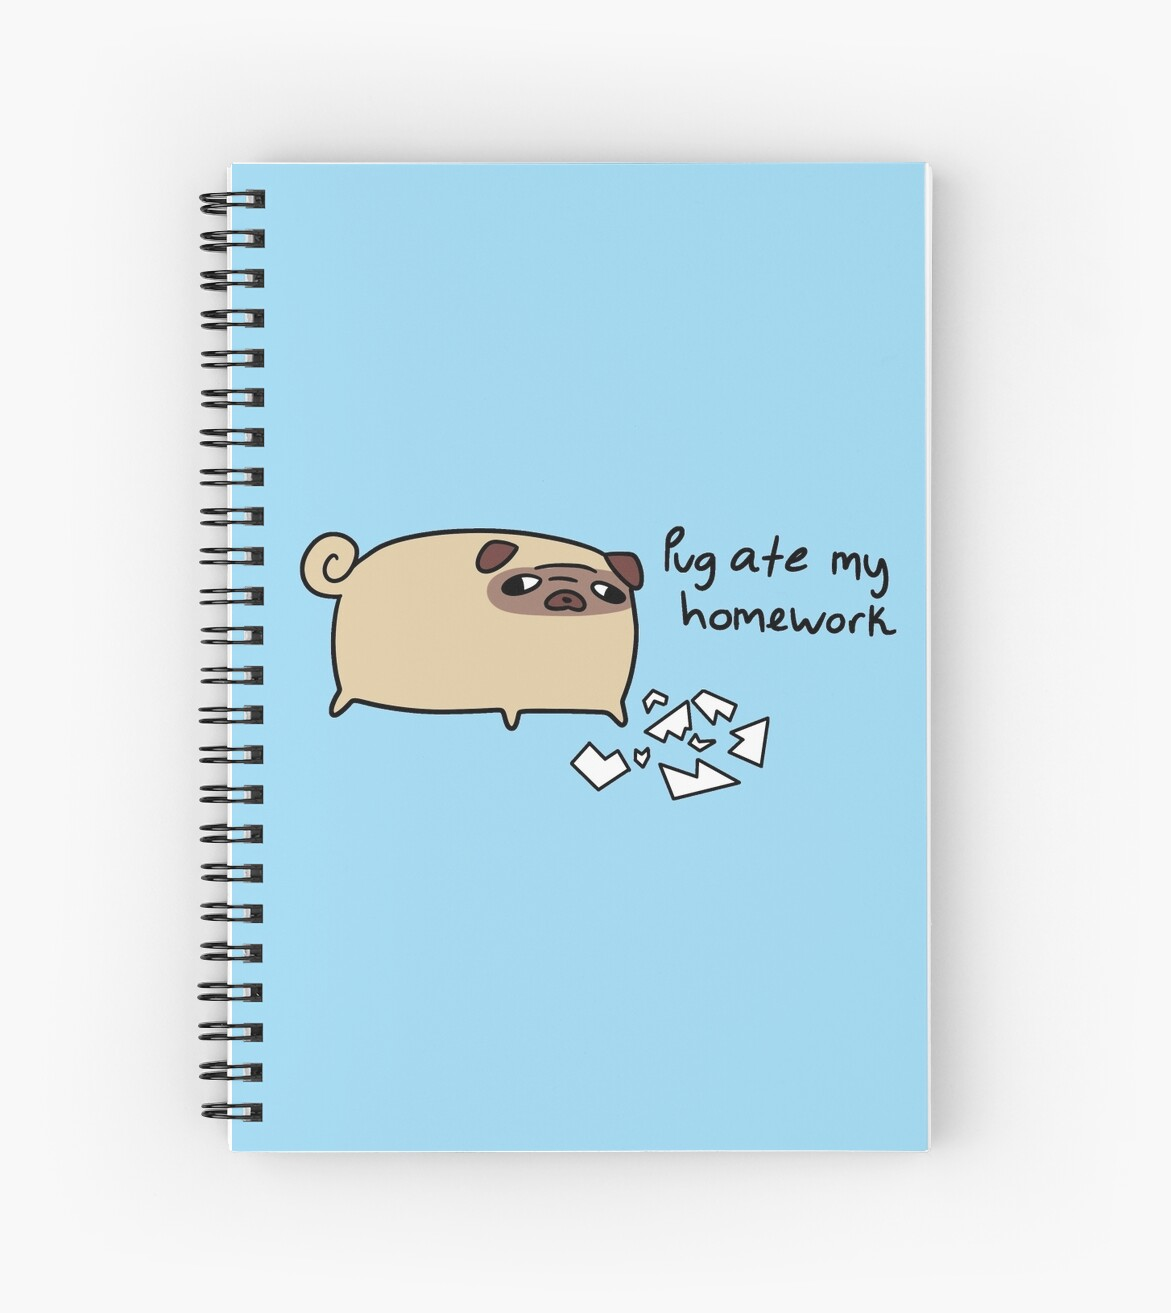 Pug Ate My Homework by SaradaBoru